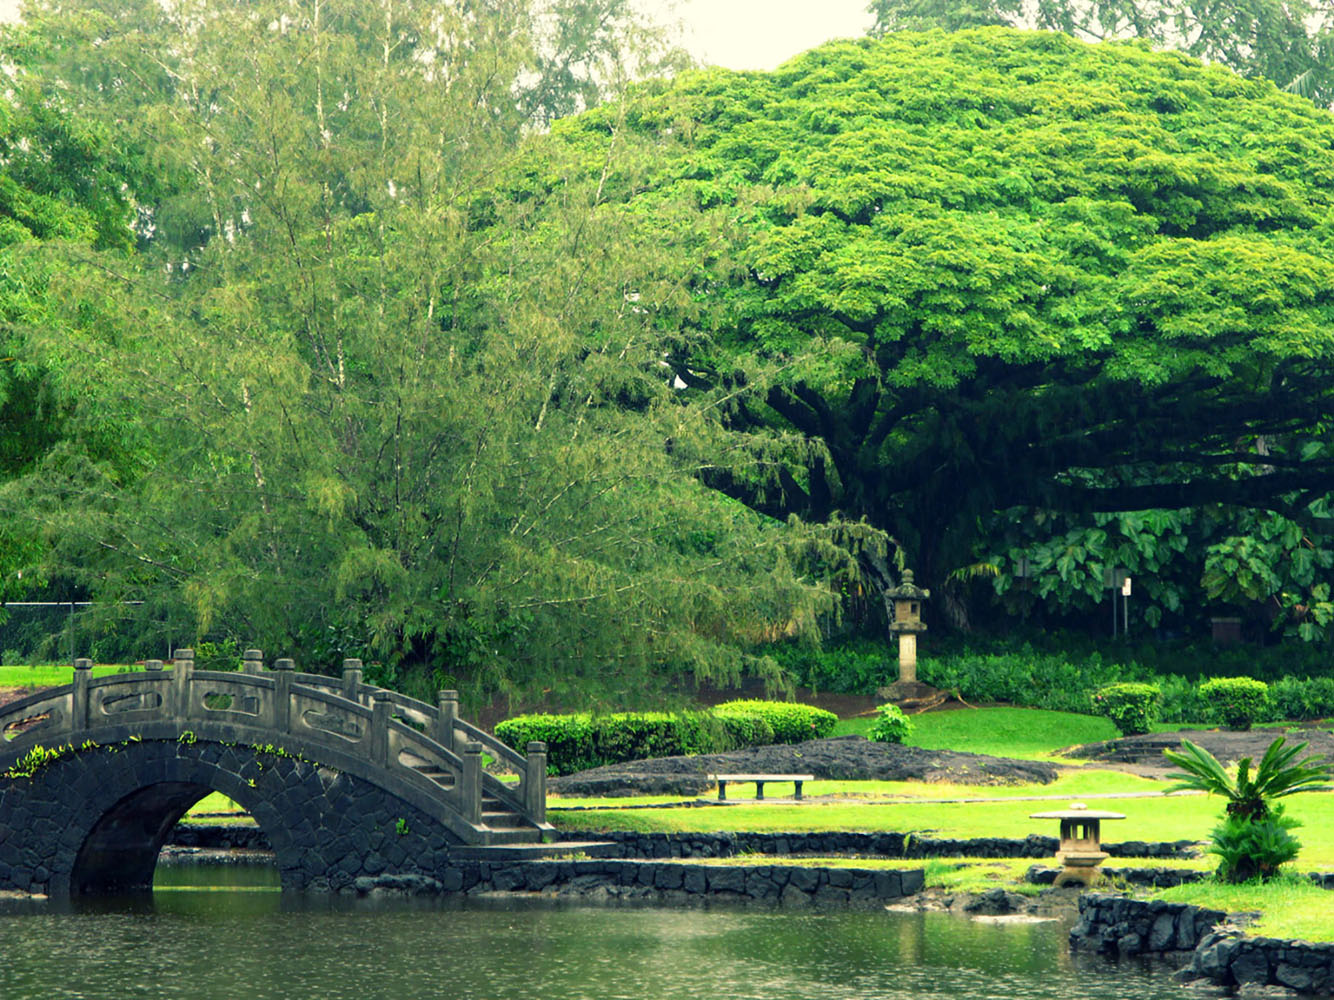 The Japanese gardens at Liliu'okalani Gardens in Hilo